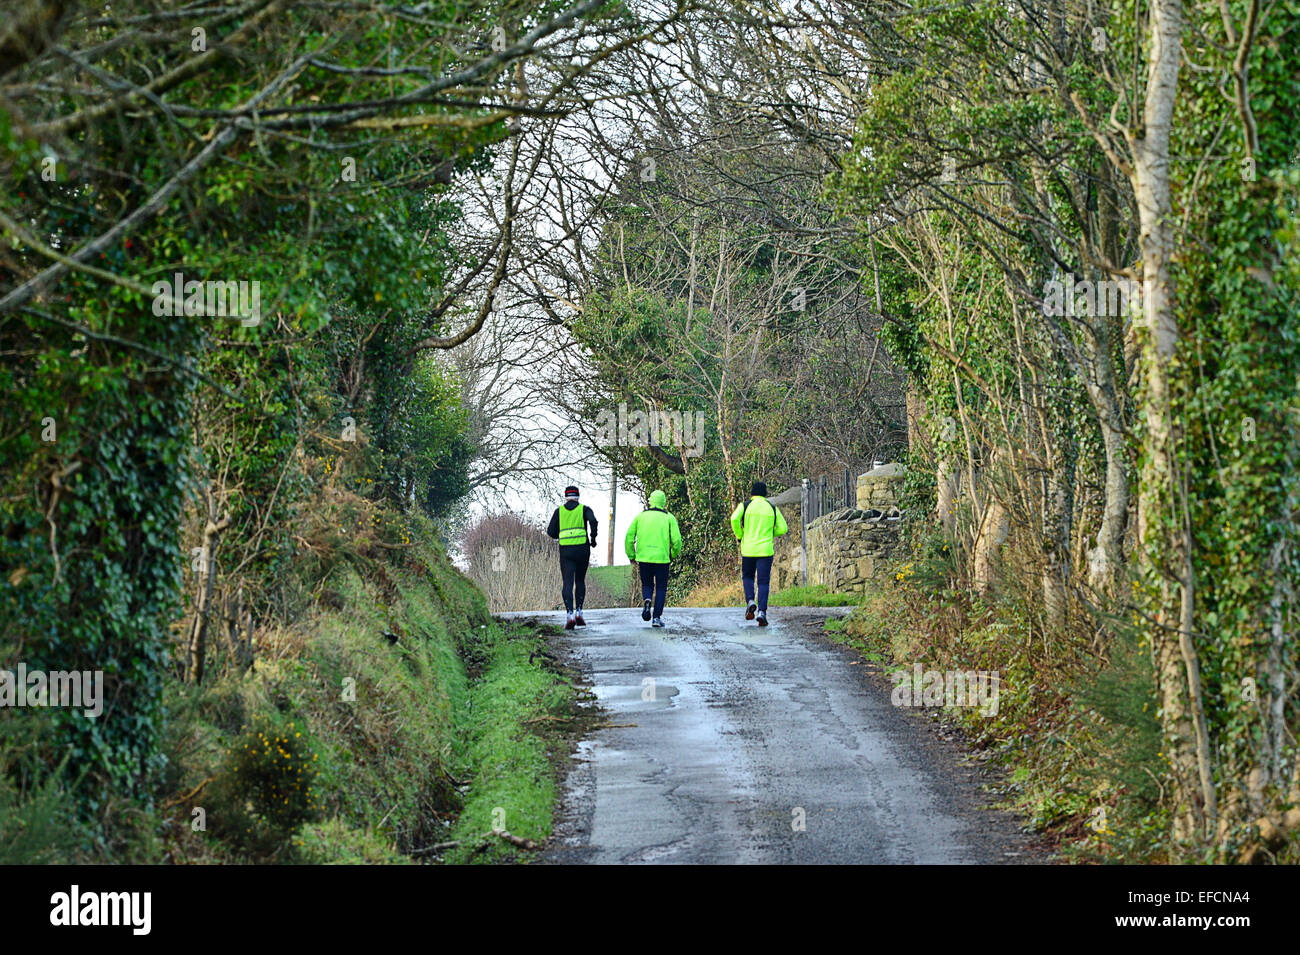 Joggers running on tree lined country road, Londonderry (Derry), Northern Ireland - Stock Image